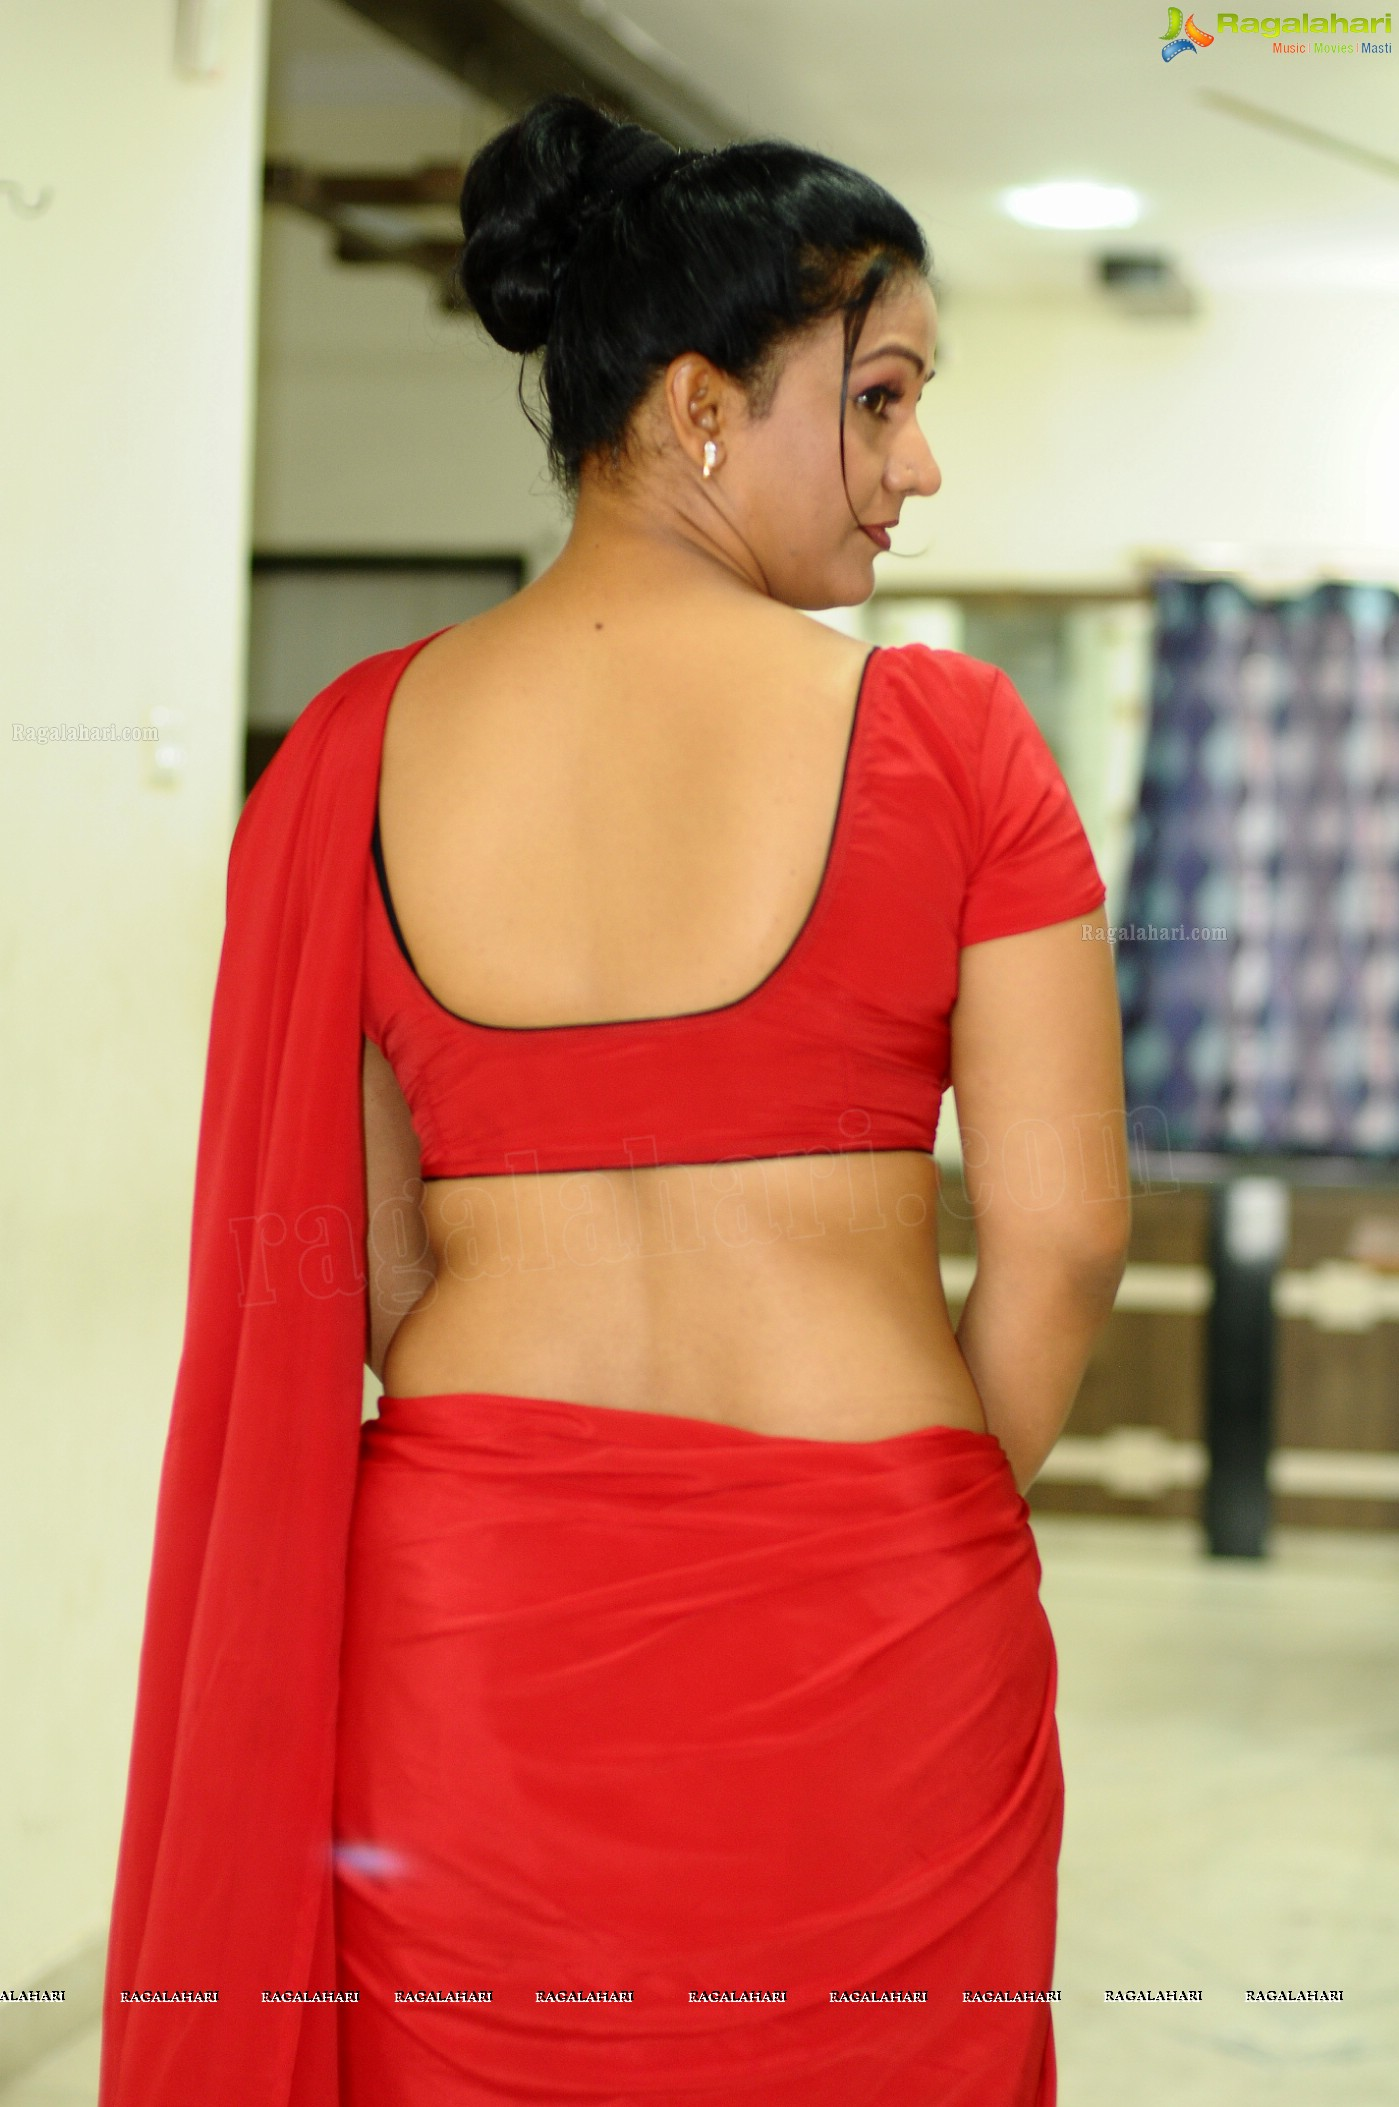 Agree, this hot telugu aunt images apologise